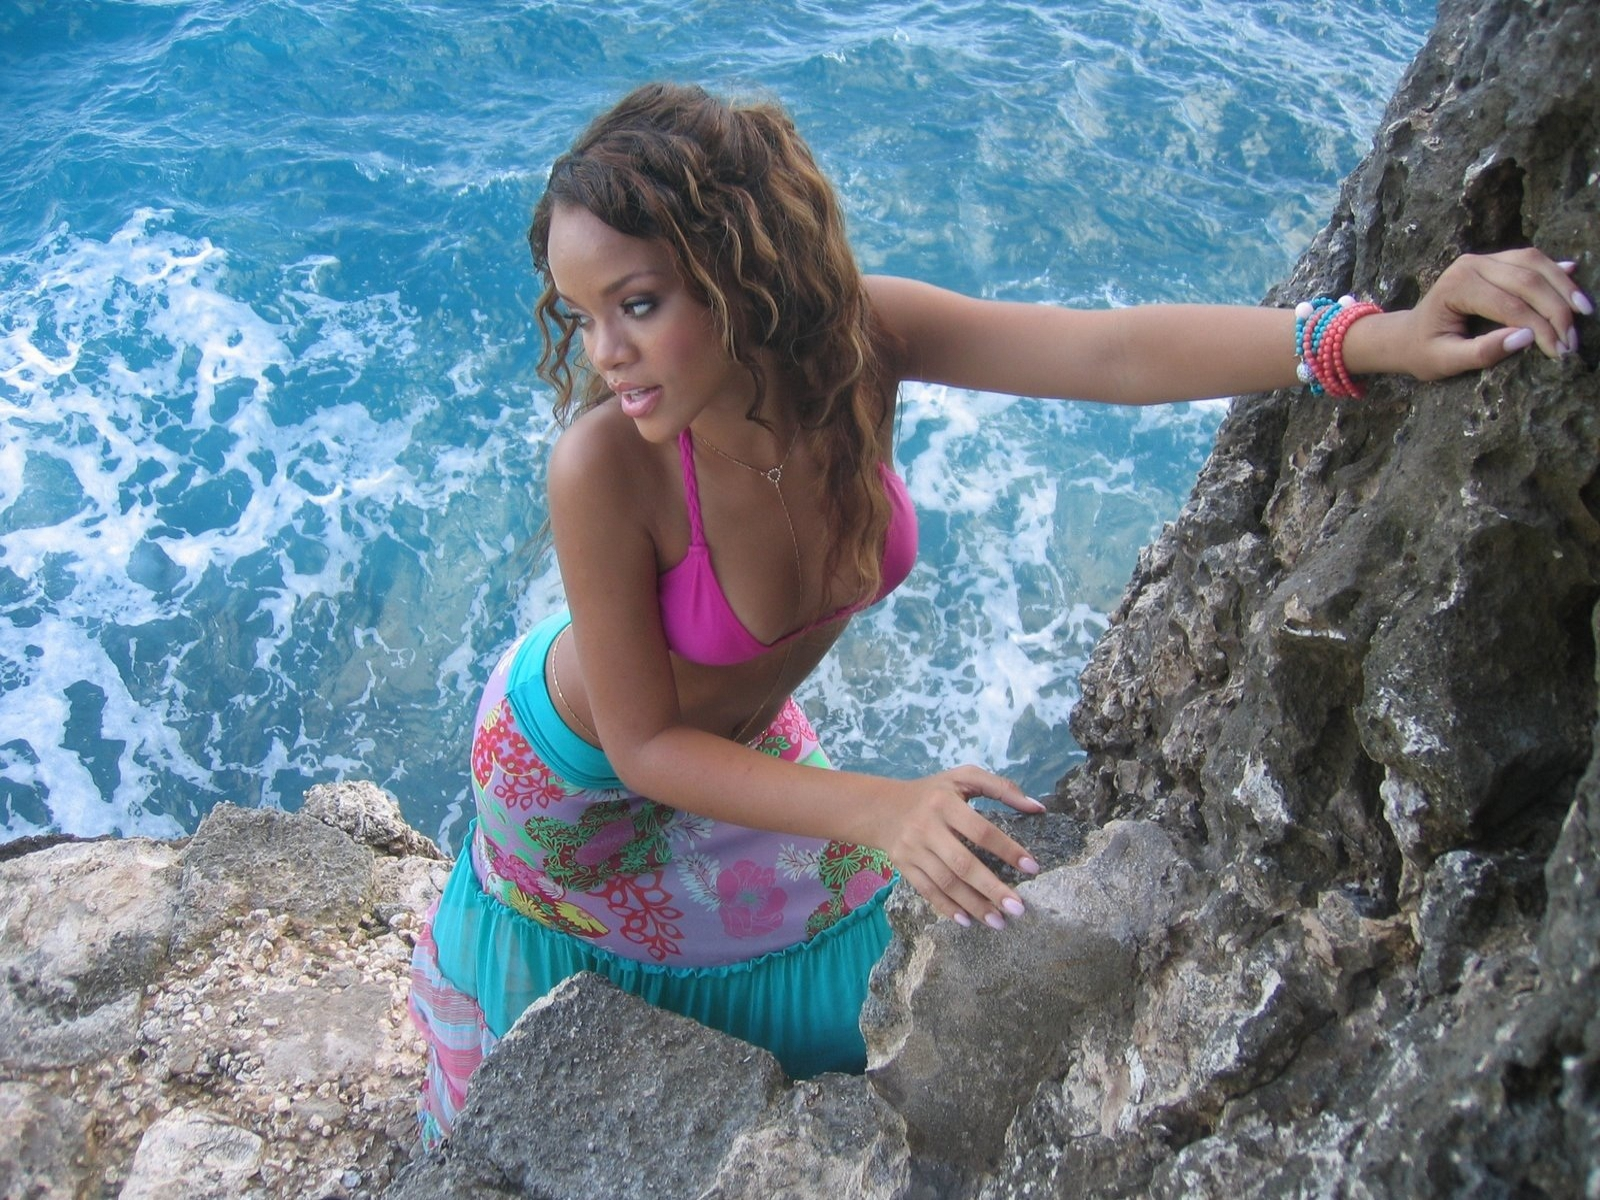 RIhanna having fun in barbados wallpapers and images   wallpapers 1600x1200